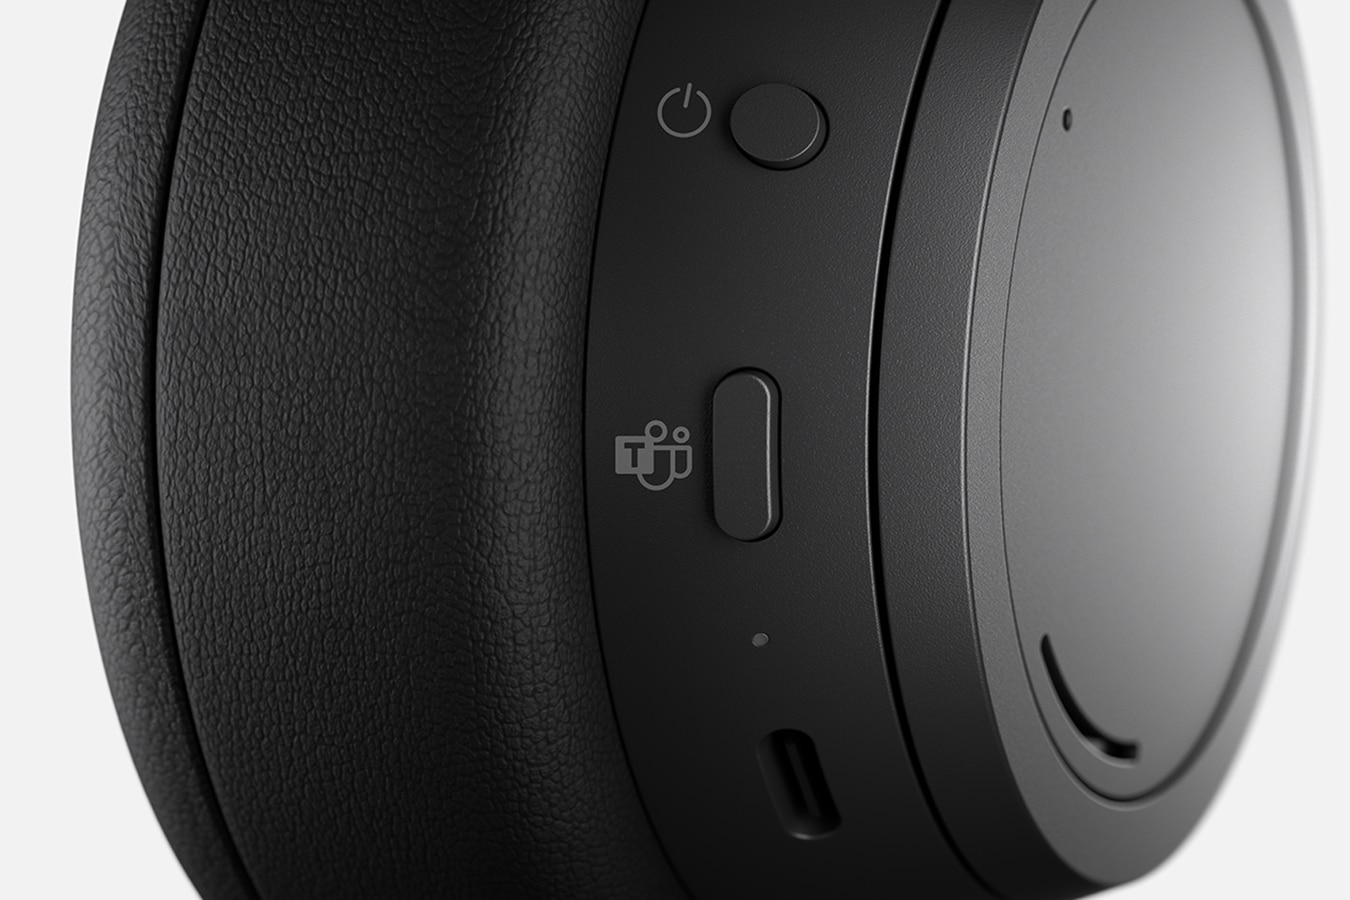 Close-up view of the Teams Button on the ear cup on Surface Headphones 2+